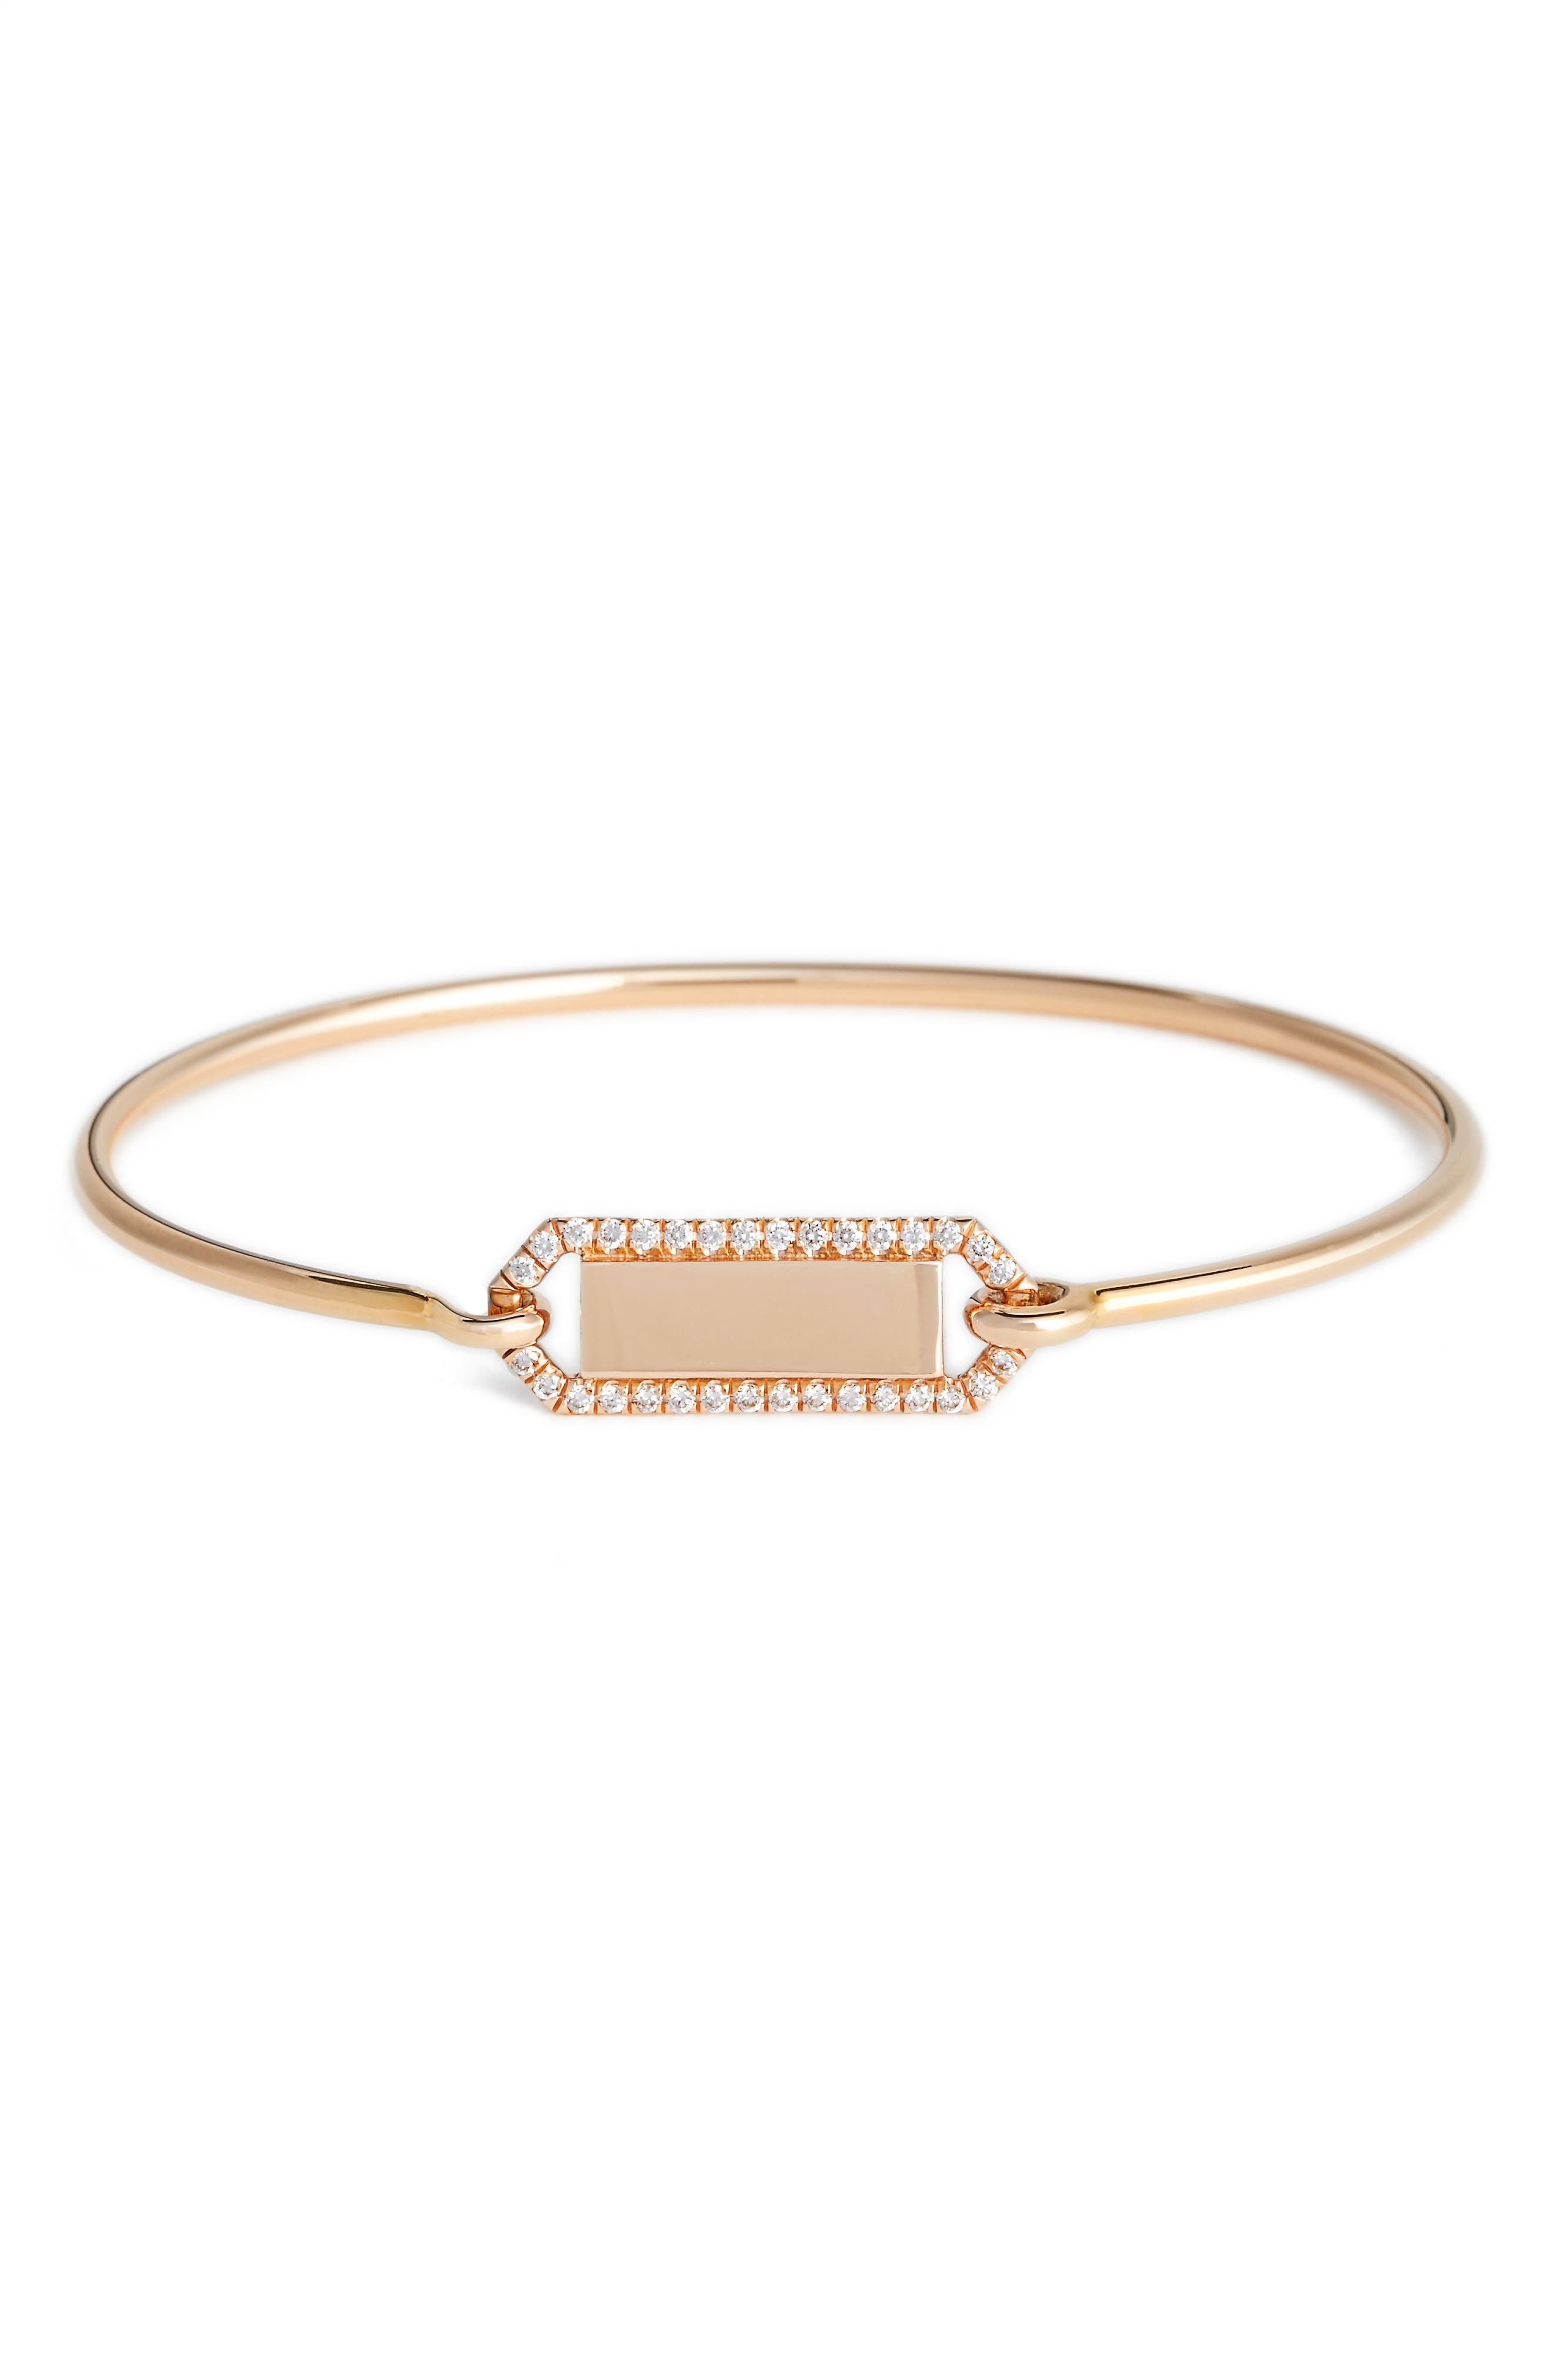 Personalized Diamond & Rose Gold Bangle,                         Main,                         color, 710